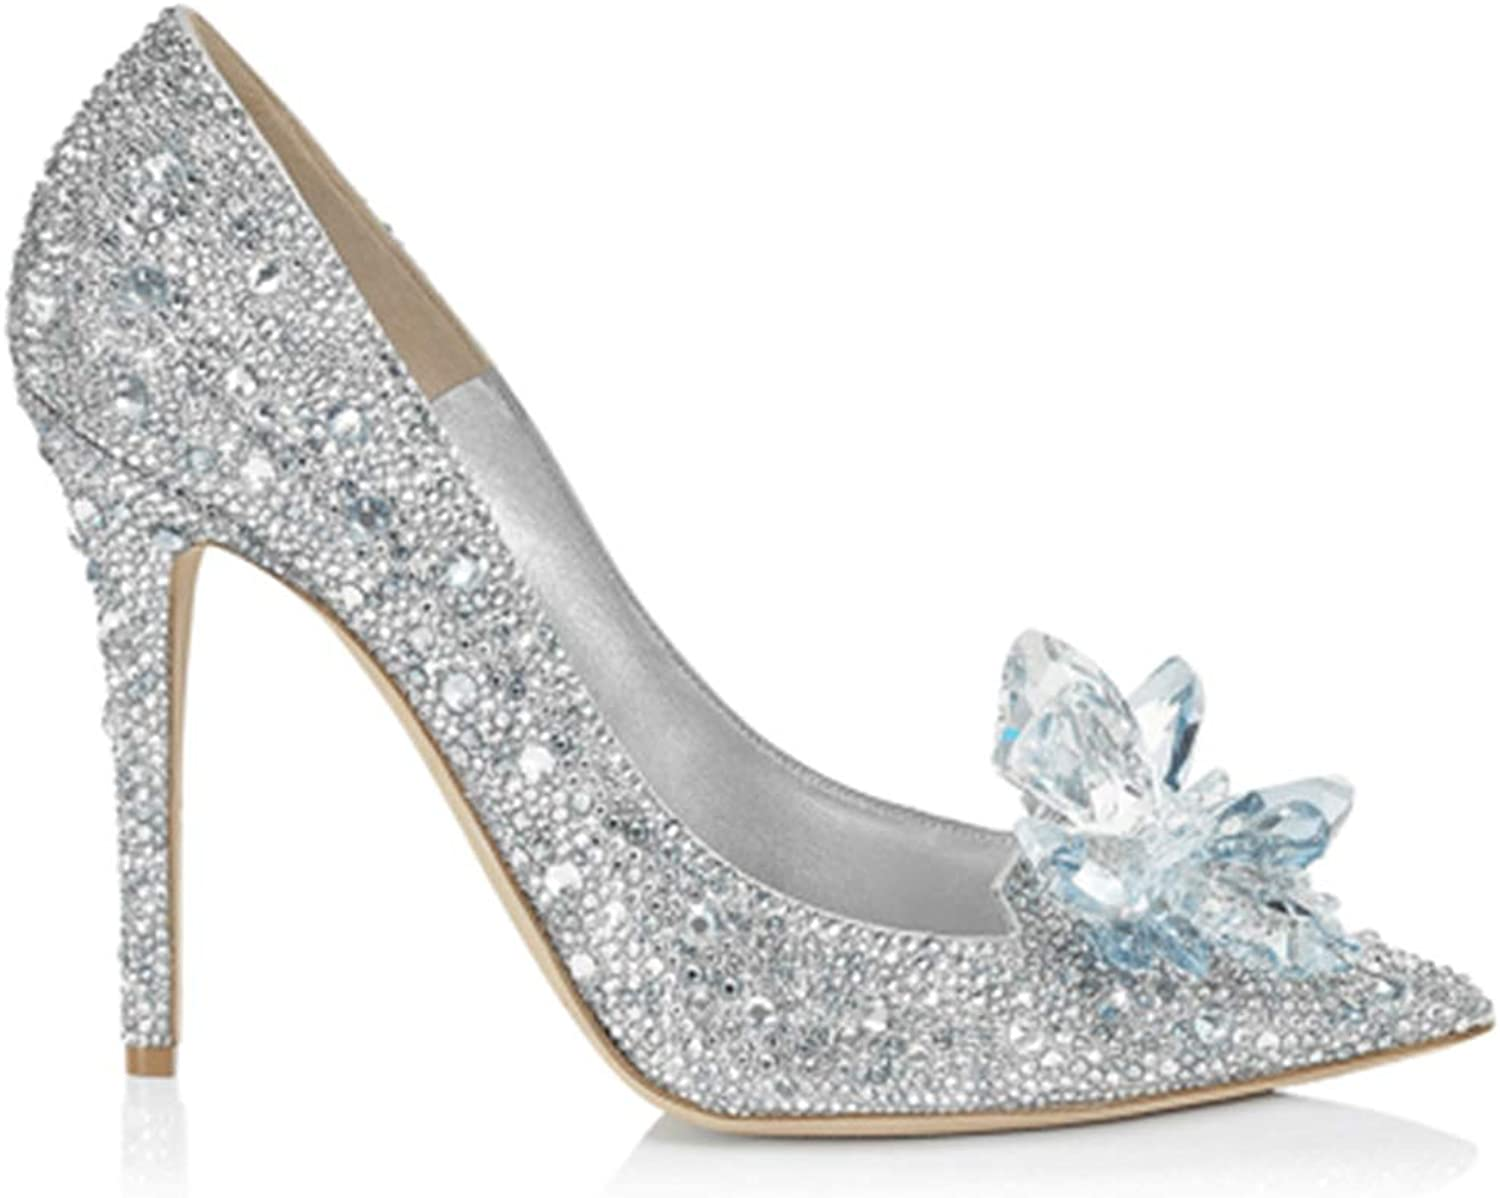 Wedding shoes for Bride, Romantic Wedding shoes Glass shoes Crystal shoes Dress high Heels Role Play